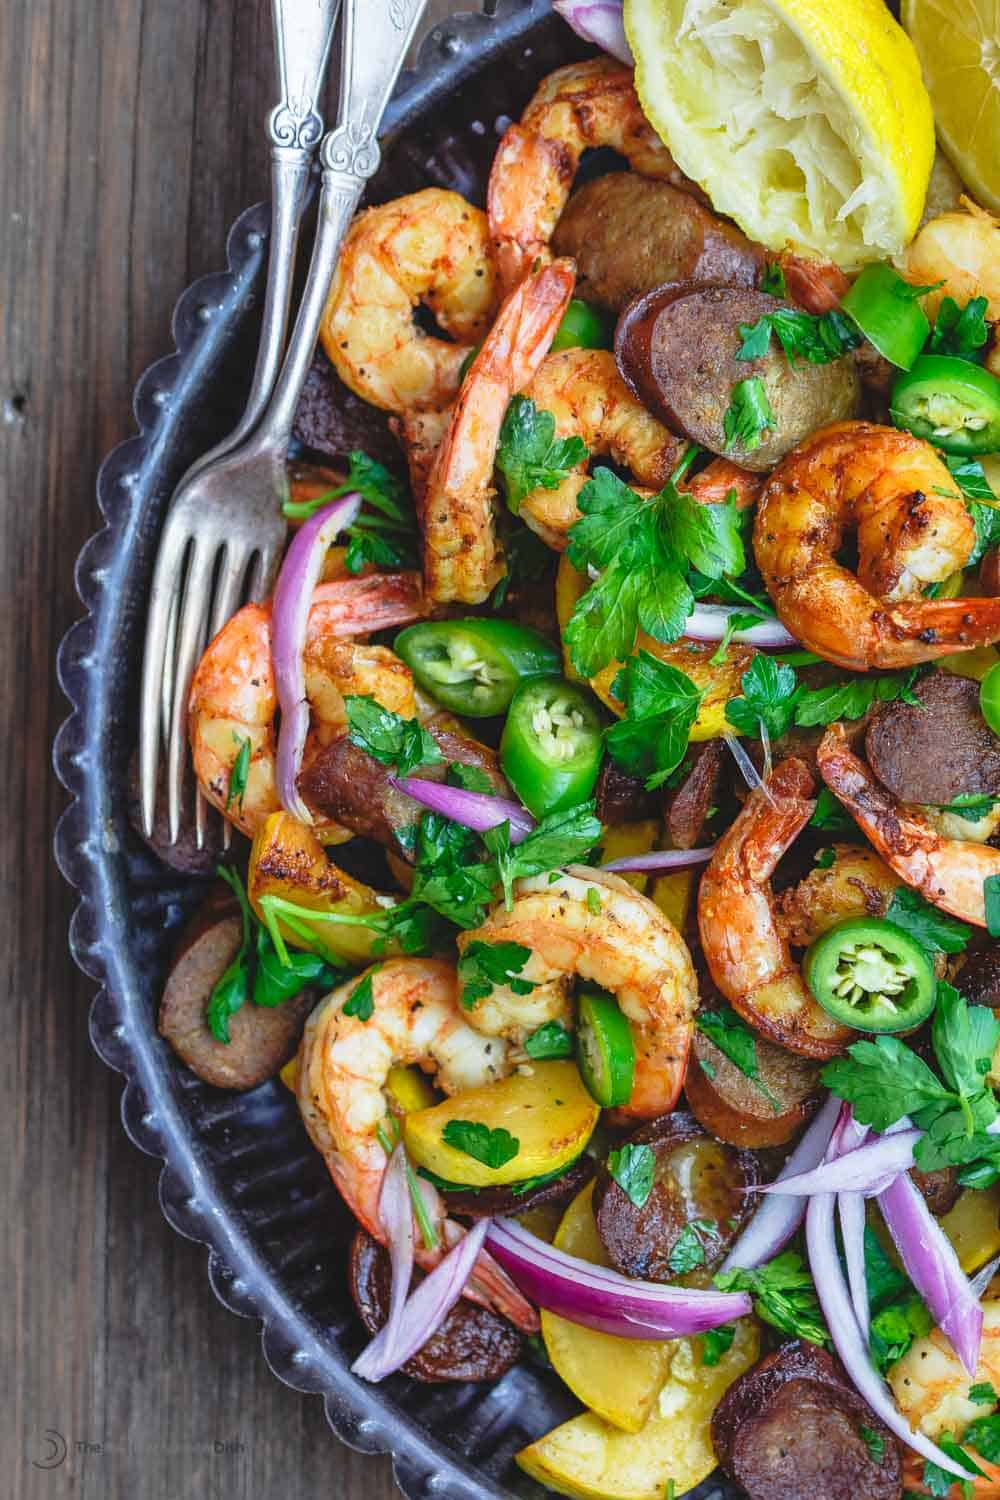 Shrimp and Chorizo garnished with fresh parsley